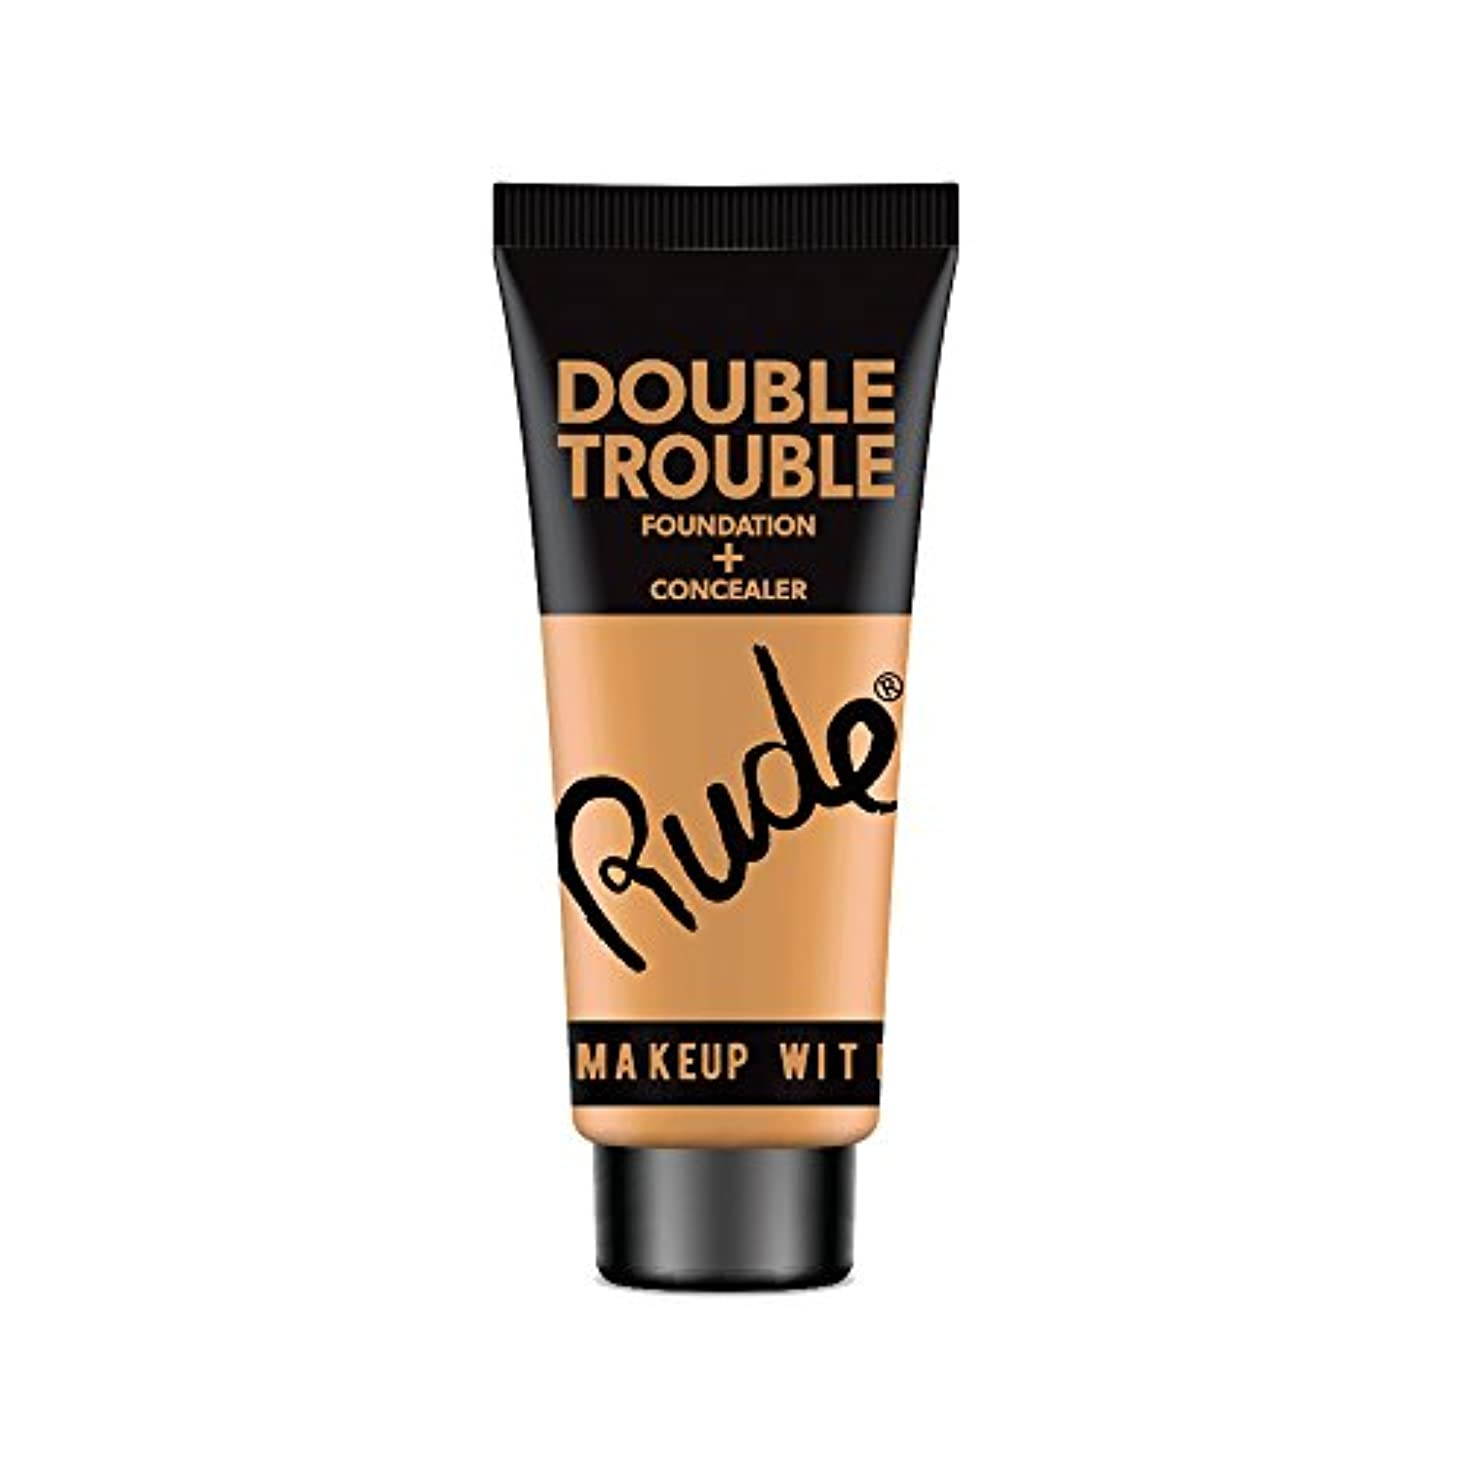 仲介者痛み遊び場RUDE Double Trouble Foundation + Concealer - Warm Natural (並行輸入品)